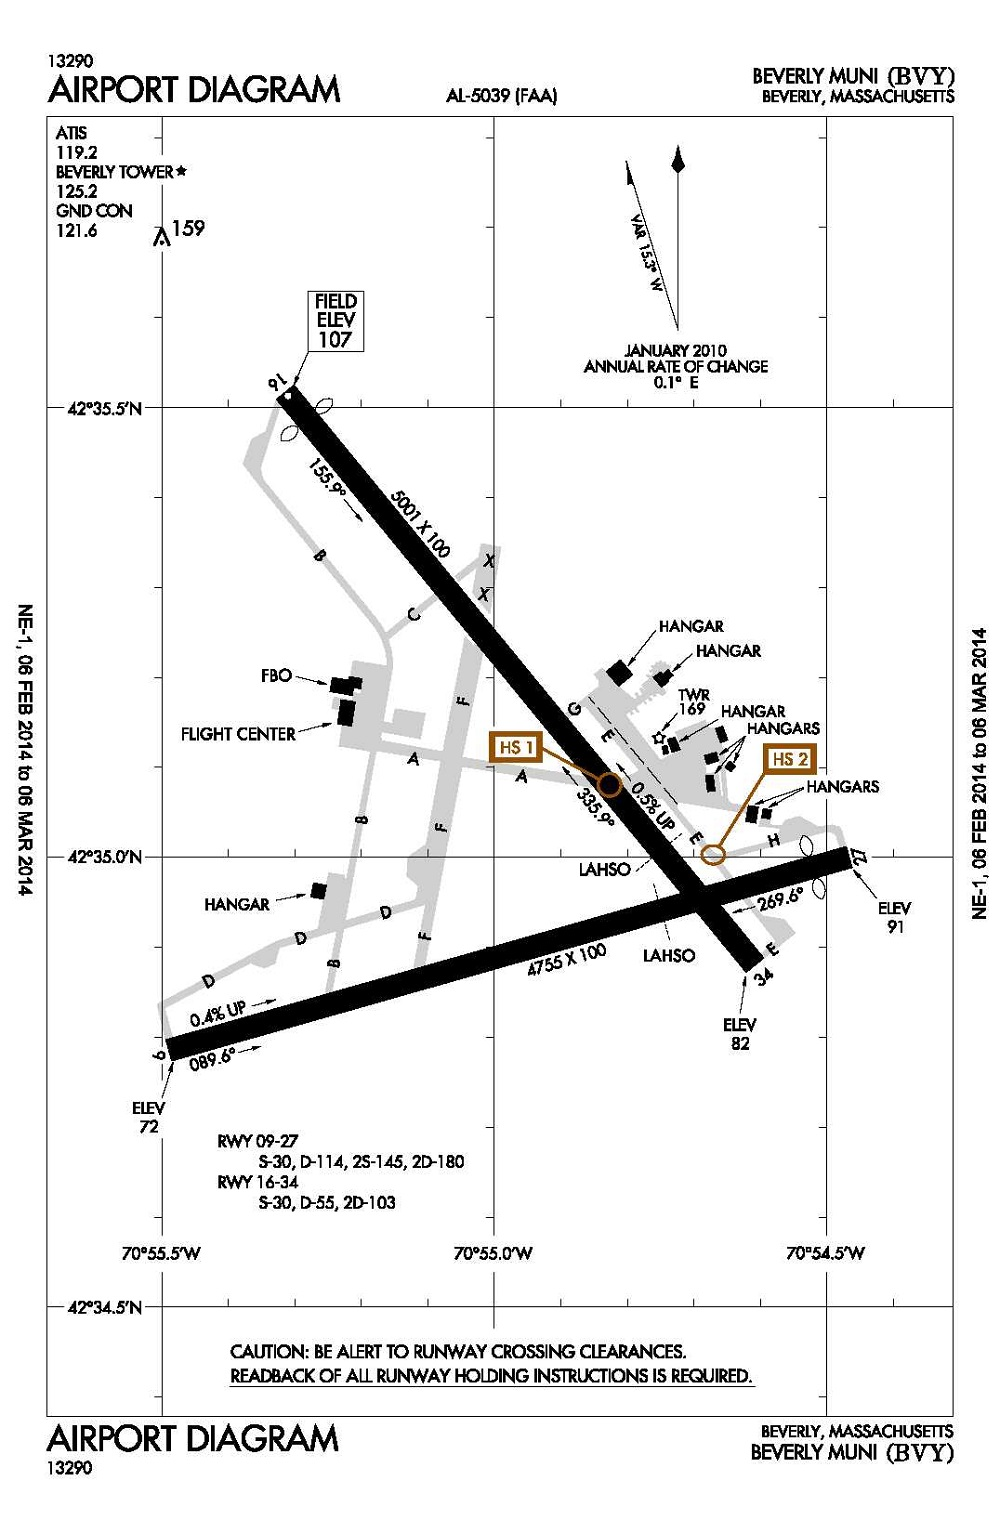 Kbvy Aviation Impact Reform Click On The Schematic To Open A Larger Version In New Window Or Est